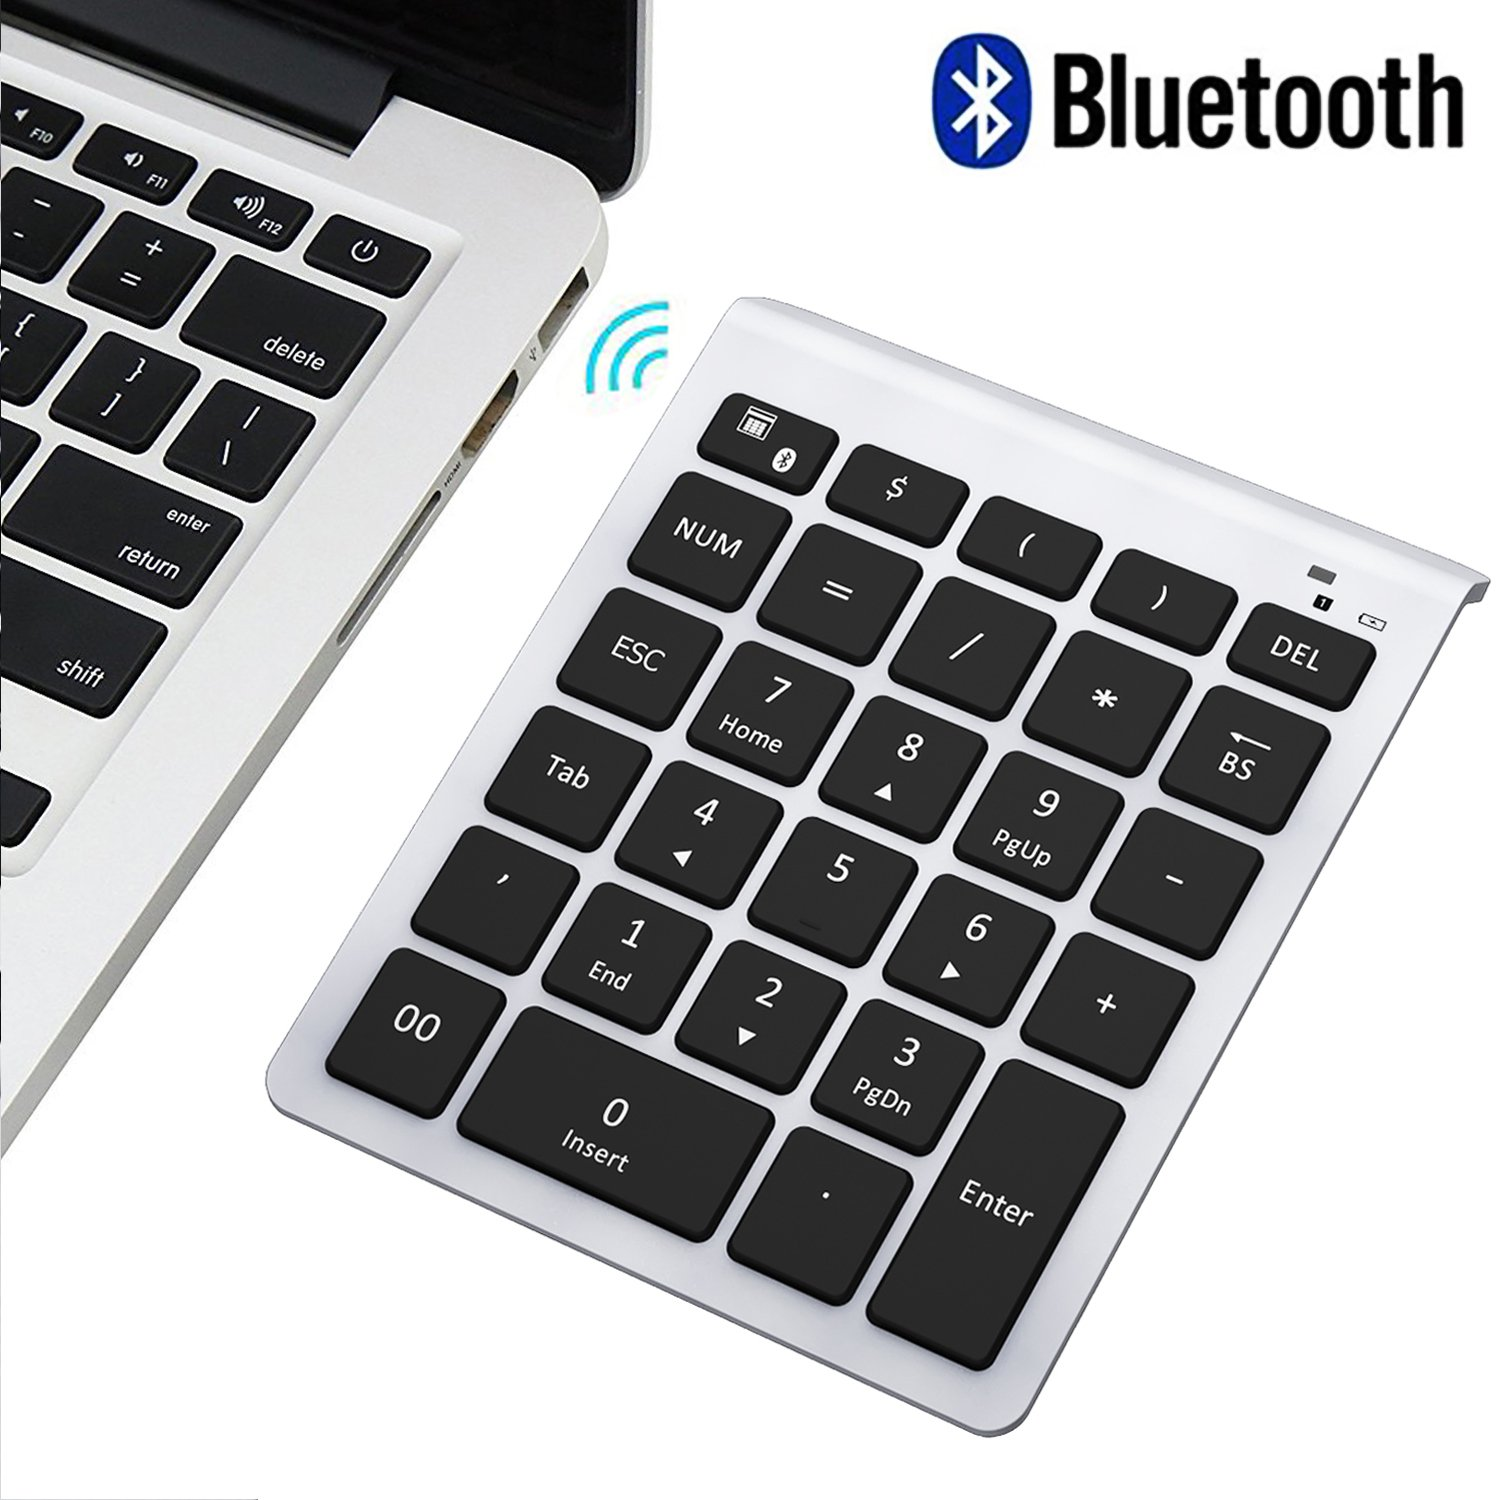 Lekvey Bluetooth Number Pad, Portable Wireless Bluetooth 28-Key Numeric Keypad Keyboard Extensions for Financial Accounting Data Entry for Laptop, Surface Pro, Tablets, Windows and More - Silver by LEKVEY